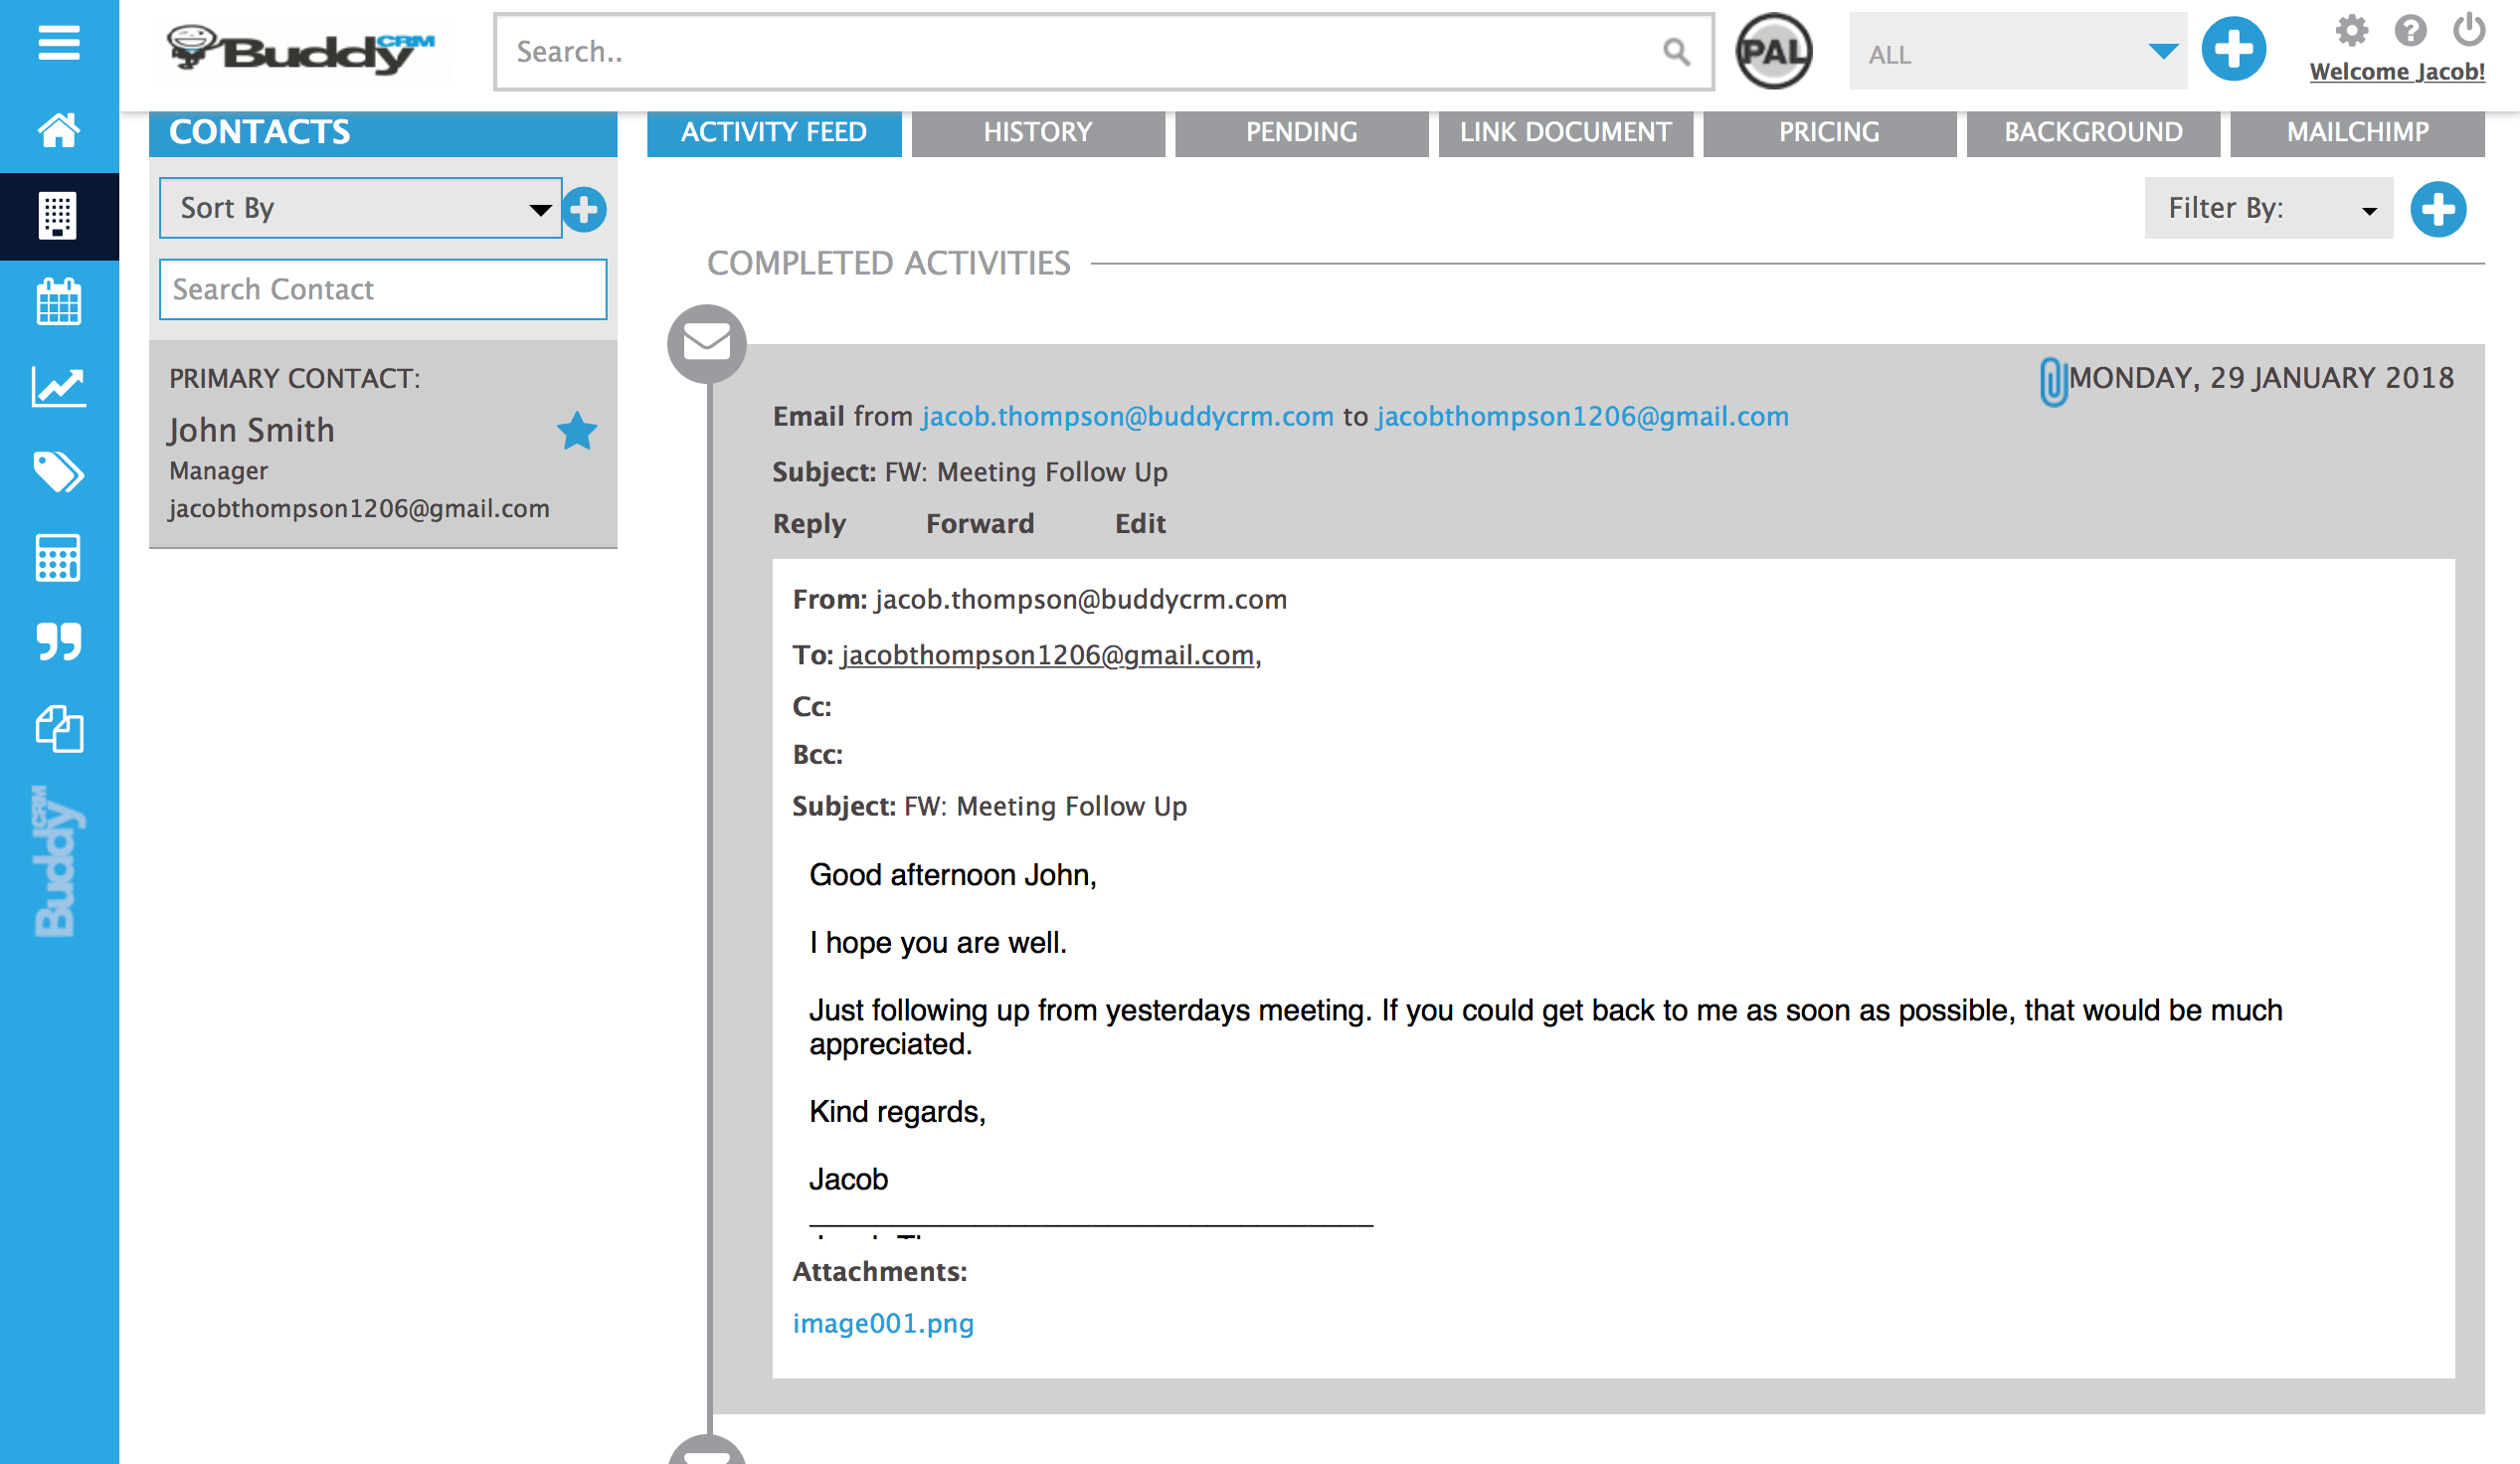 screenshot of an email in the activities time line of BuddyCRM